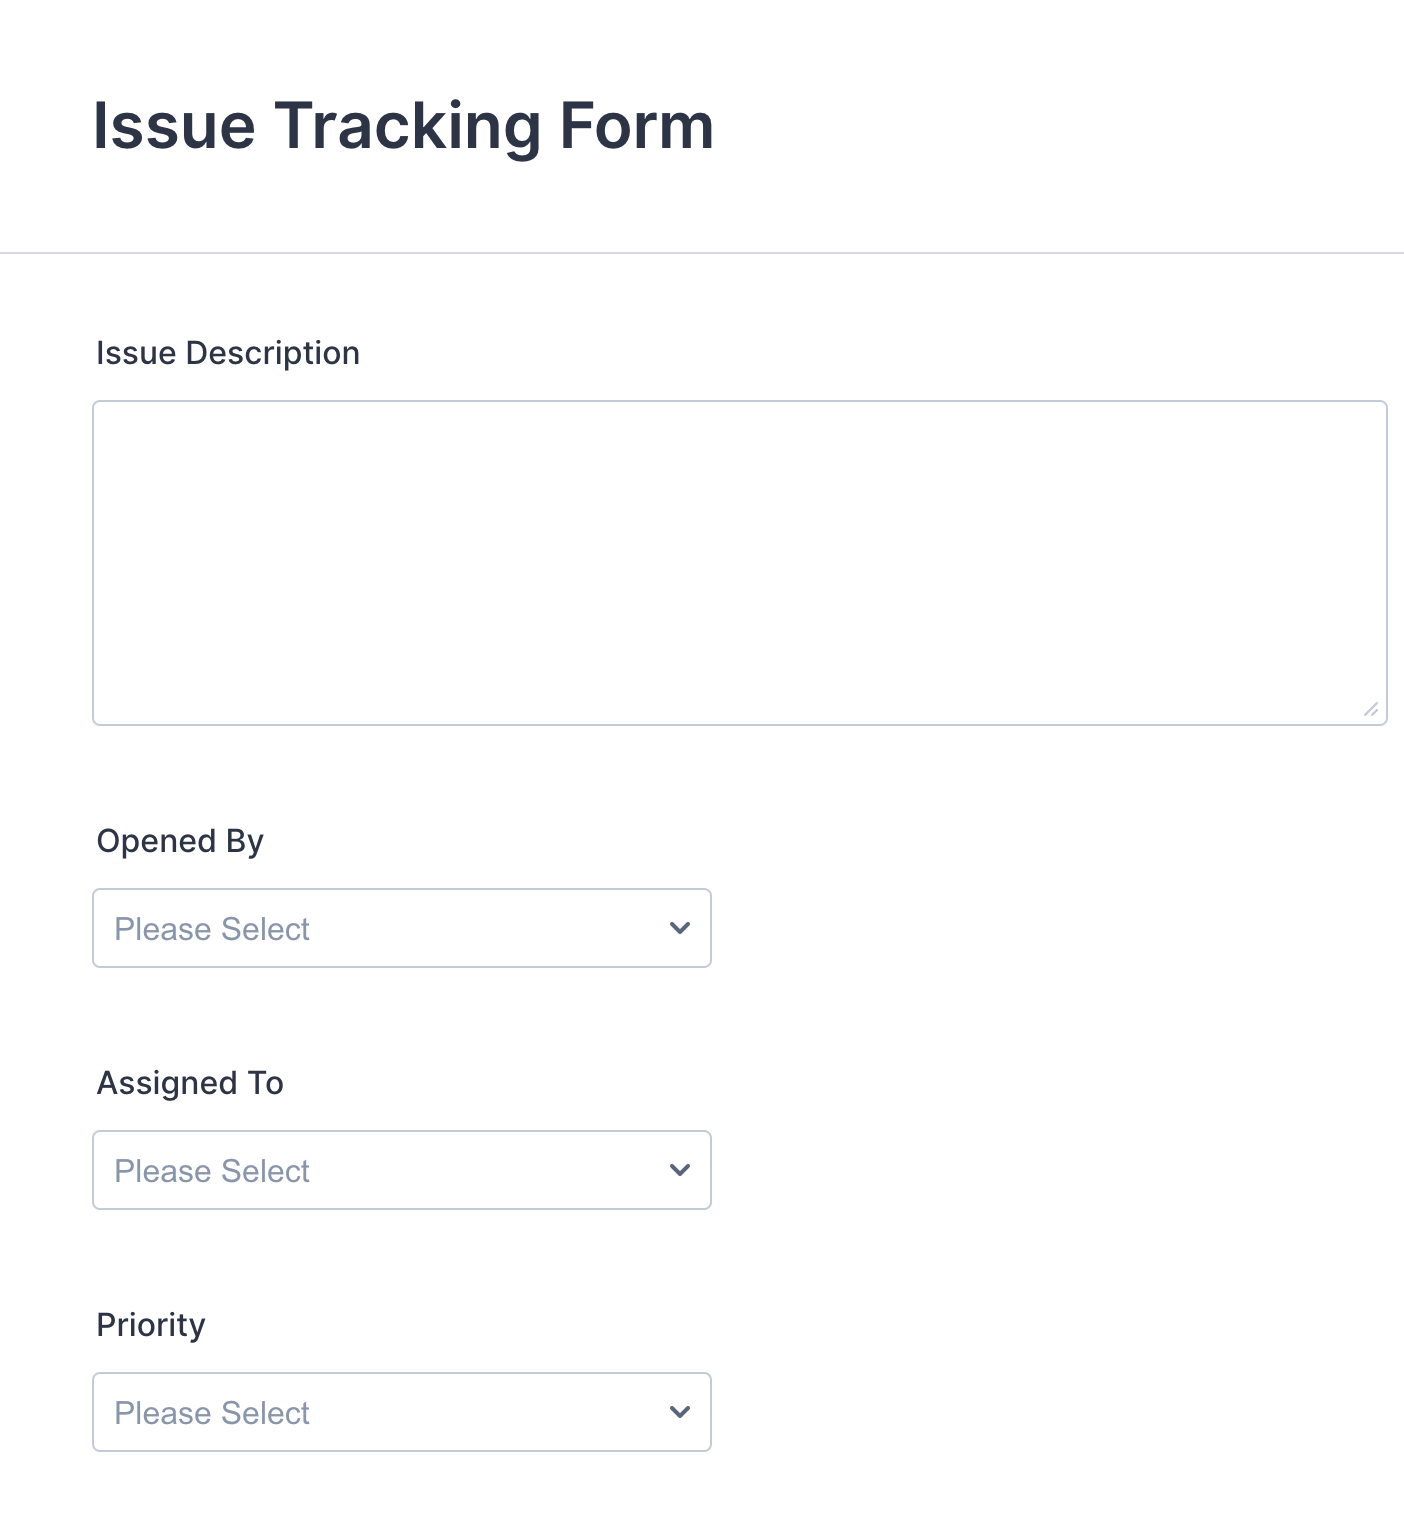 Issue Tracking Form Template